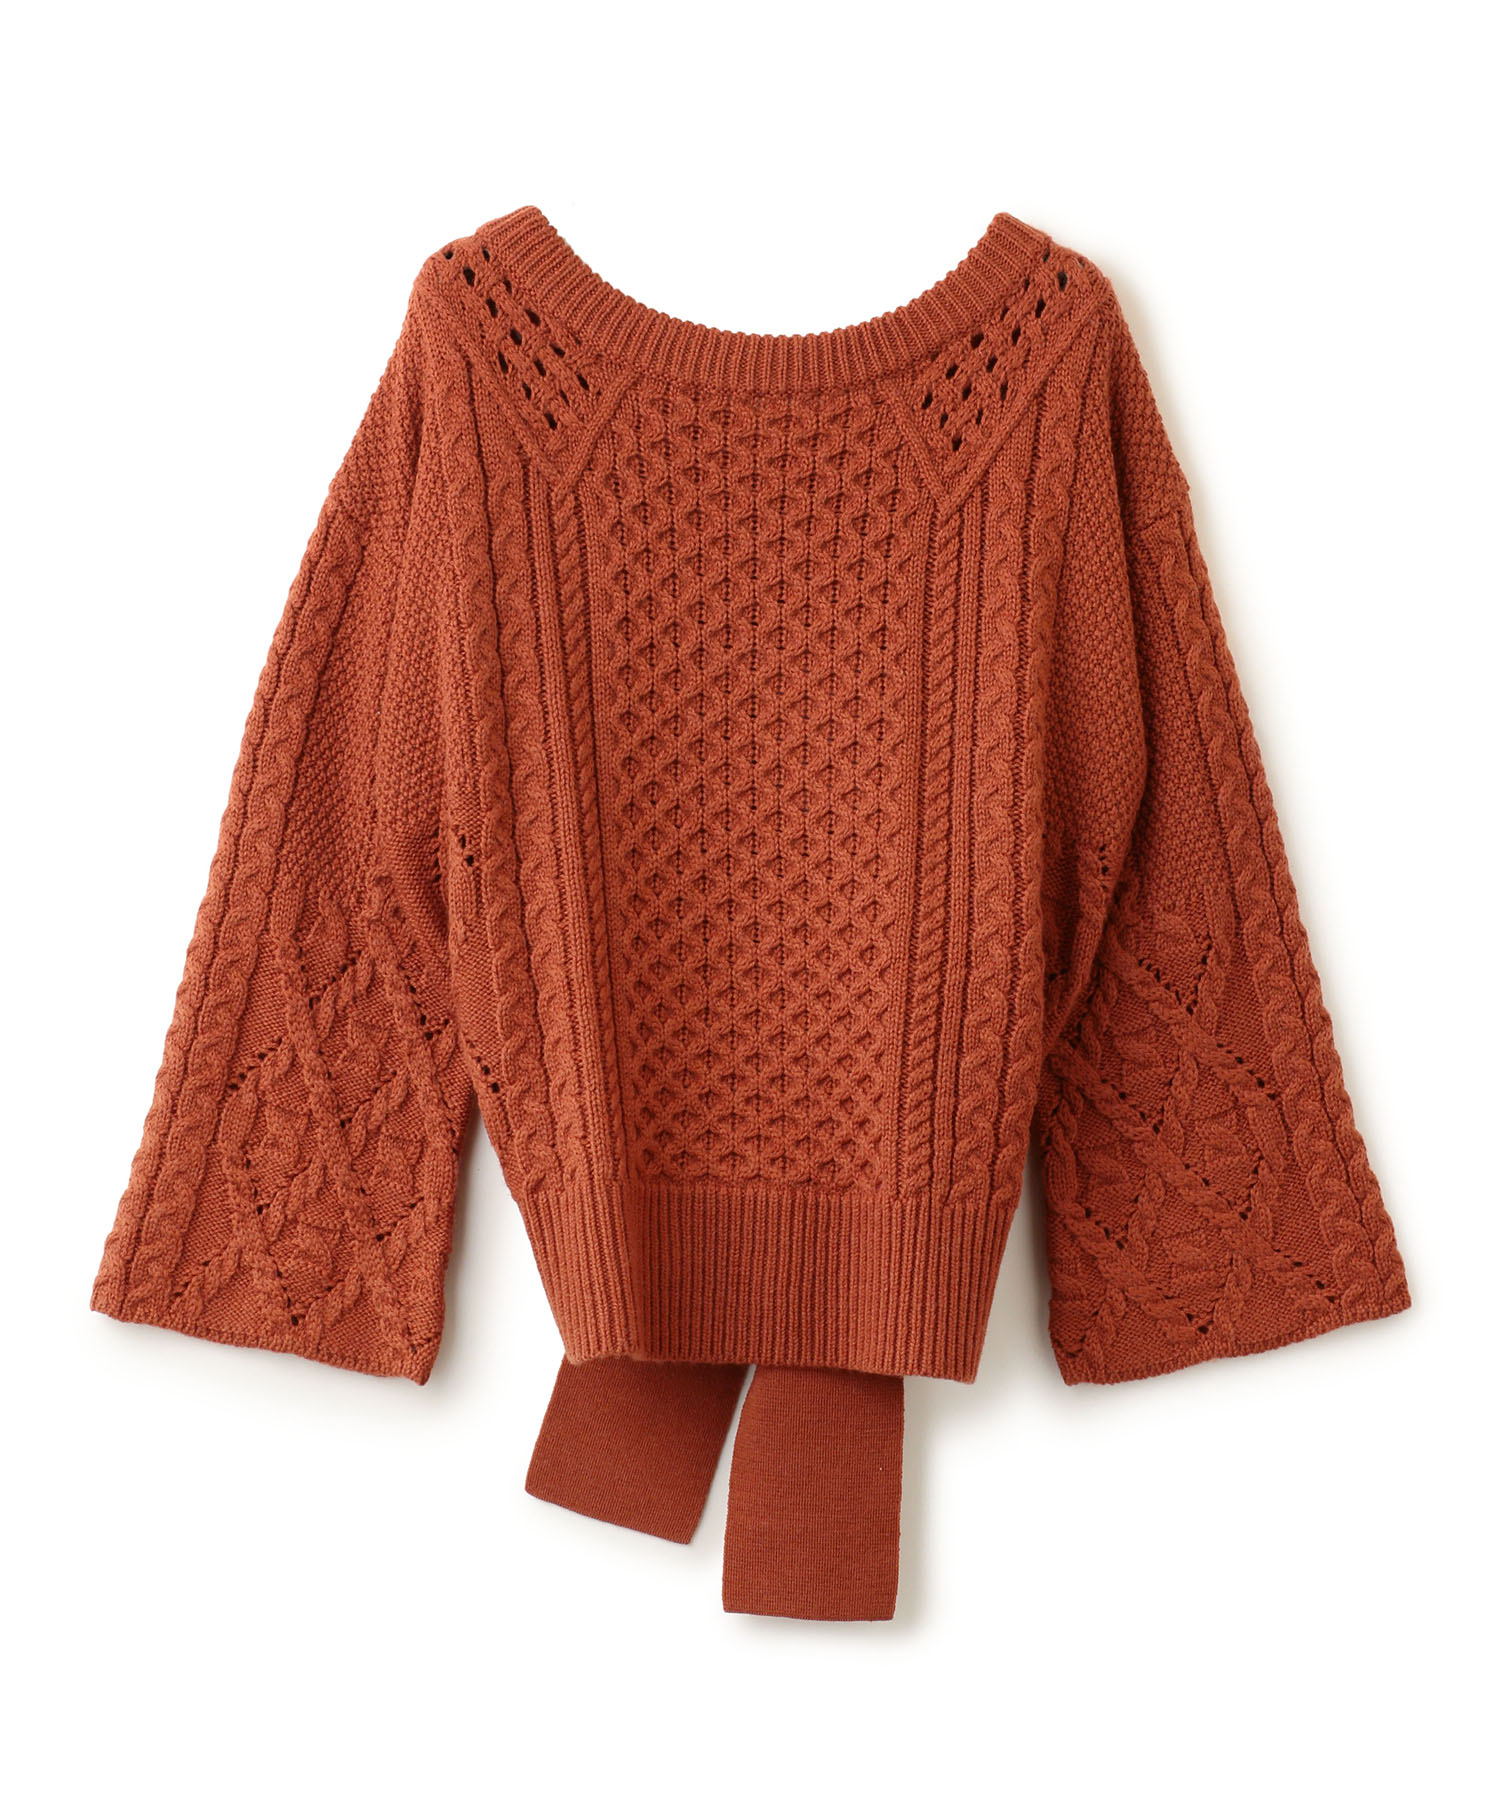 Knot Cable Pullover